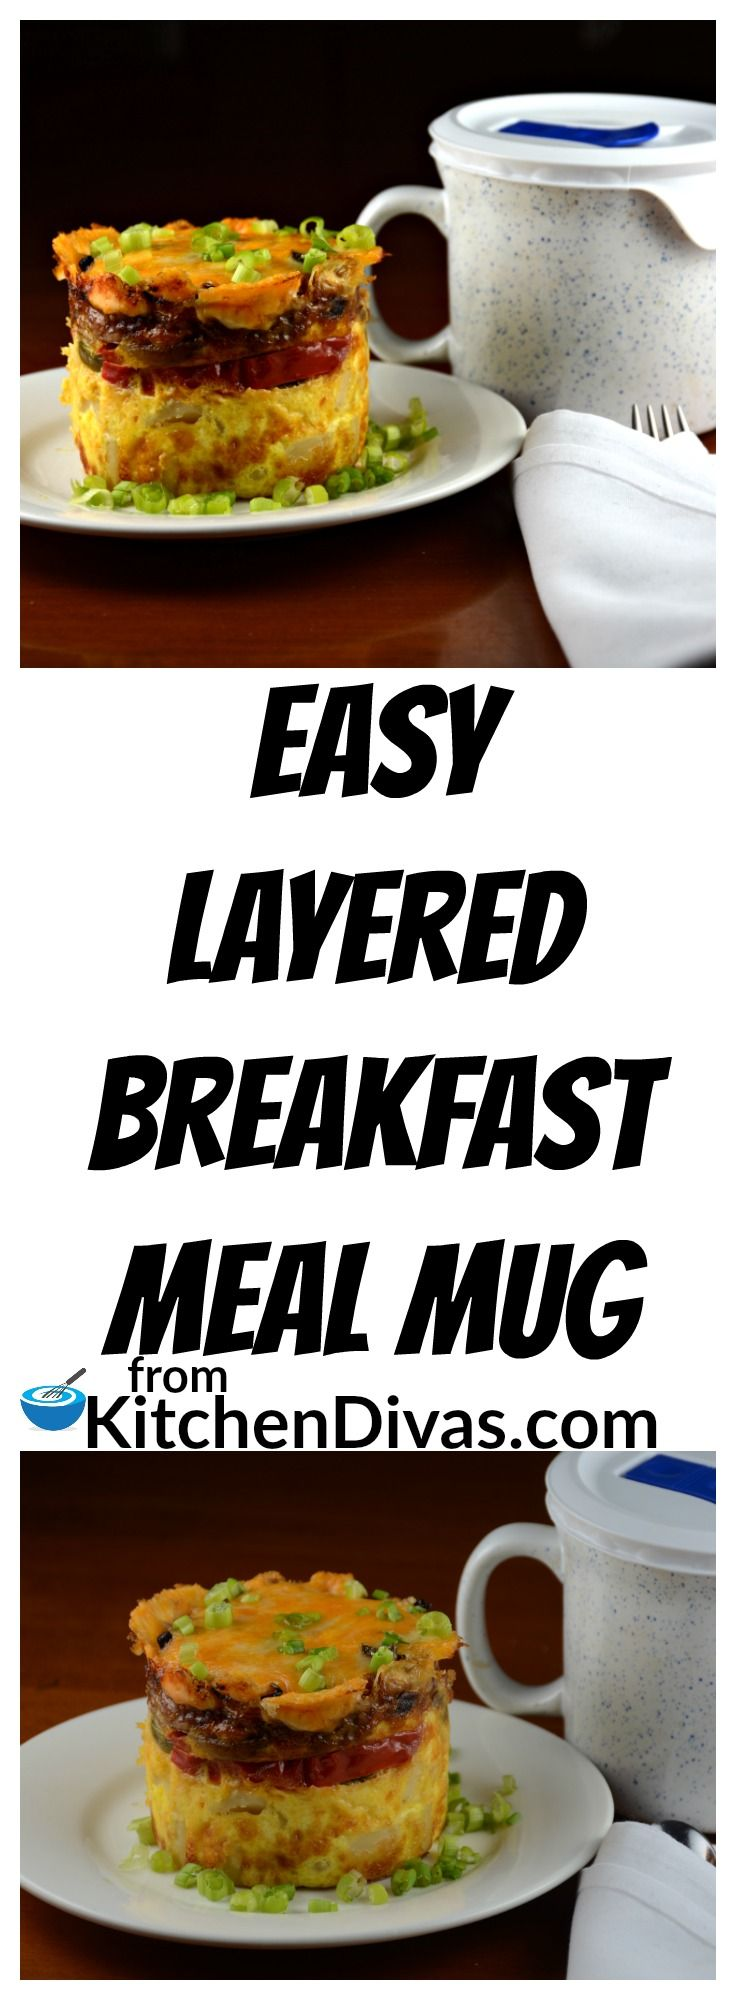 This recipe for Easy Layered Breakfast Meal in a Mug is an awesome and delicious way to serve breakfast or brunch or even dinner, every time!  If you want to include bacon just throw a slice or two between a piece of paper towel and microwave for 1 1/2 - 2 minutes!  Dice and sprinkle over top of the cheese, before you add your vegetables!  Yummy!